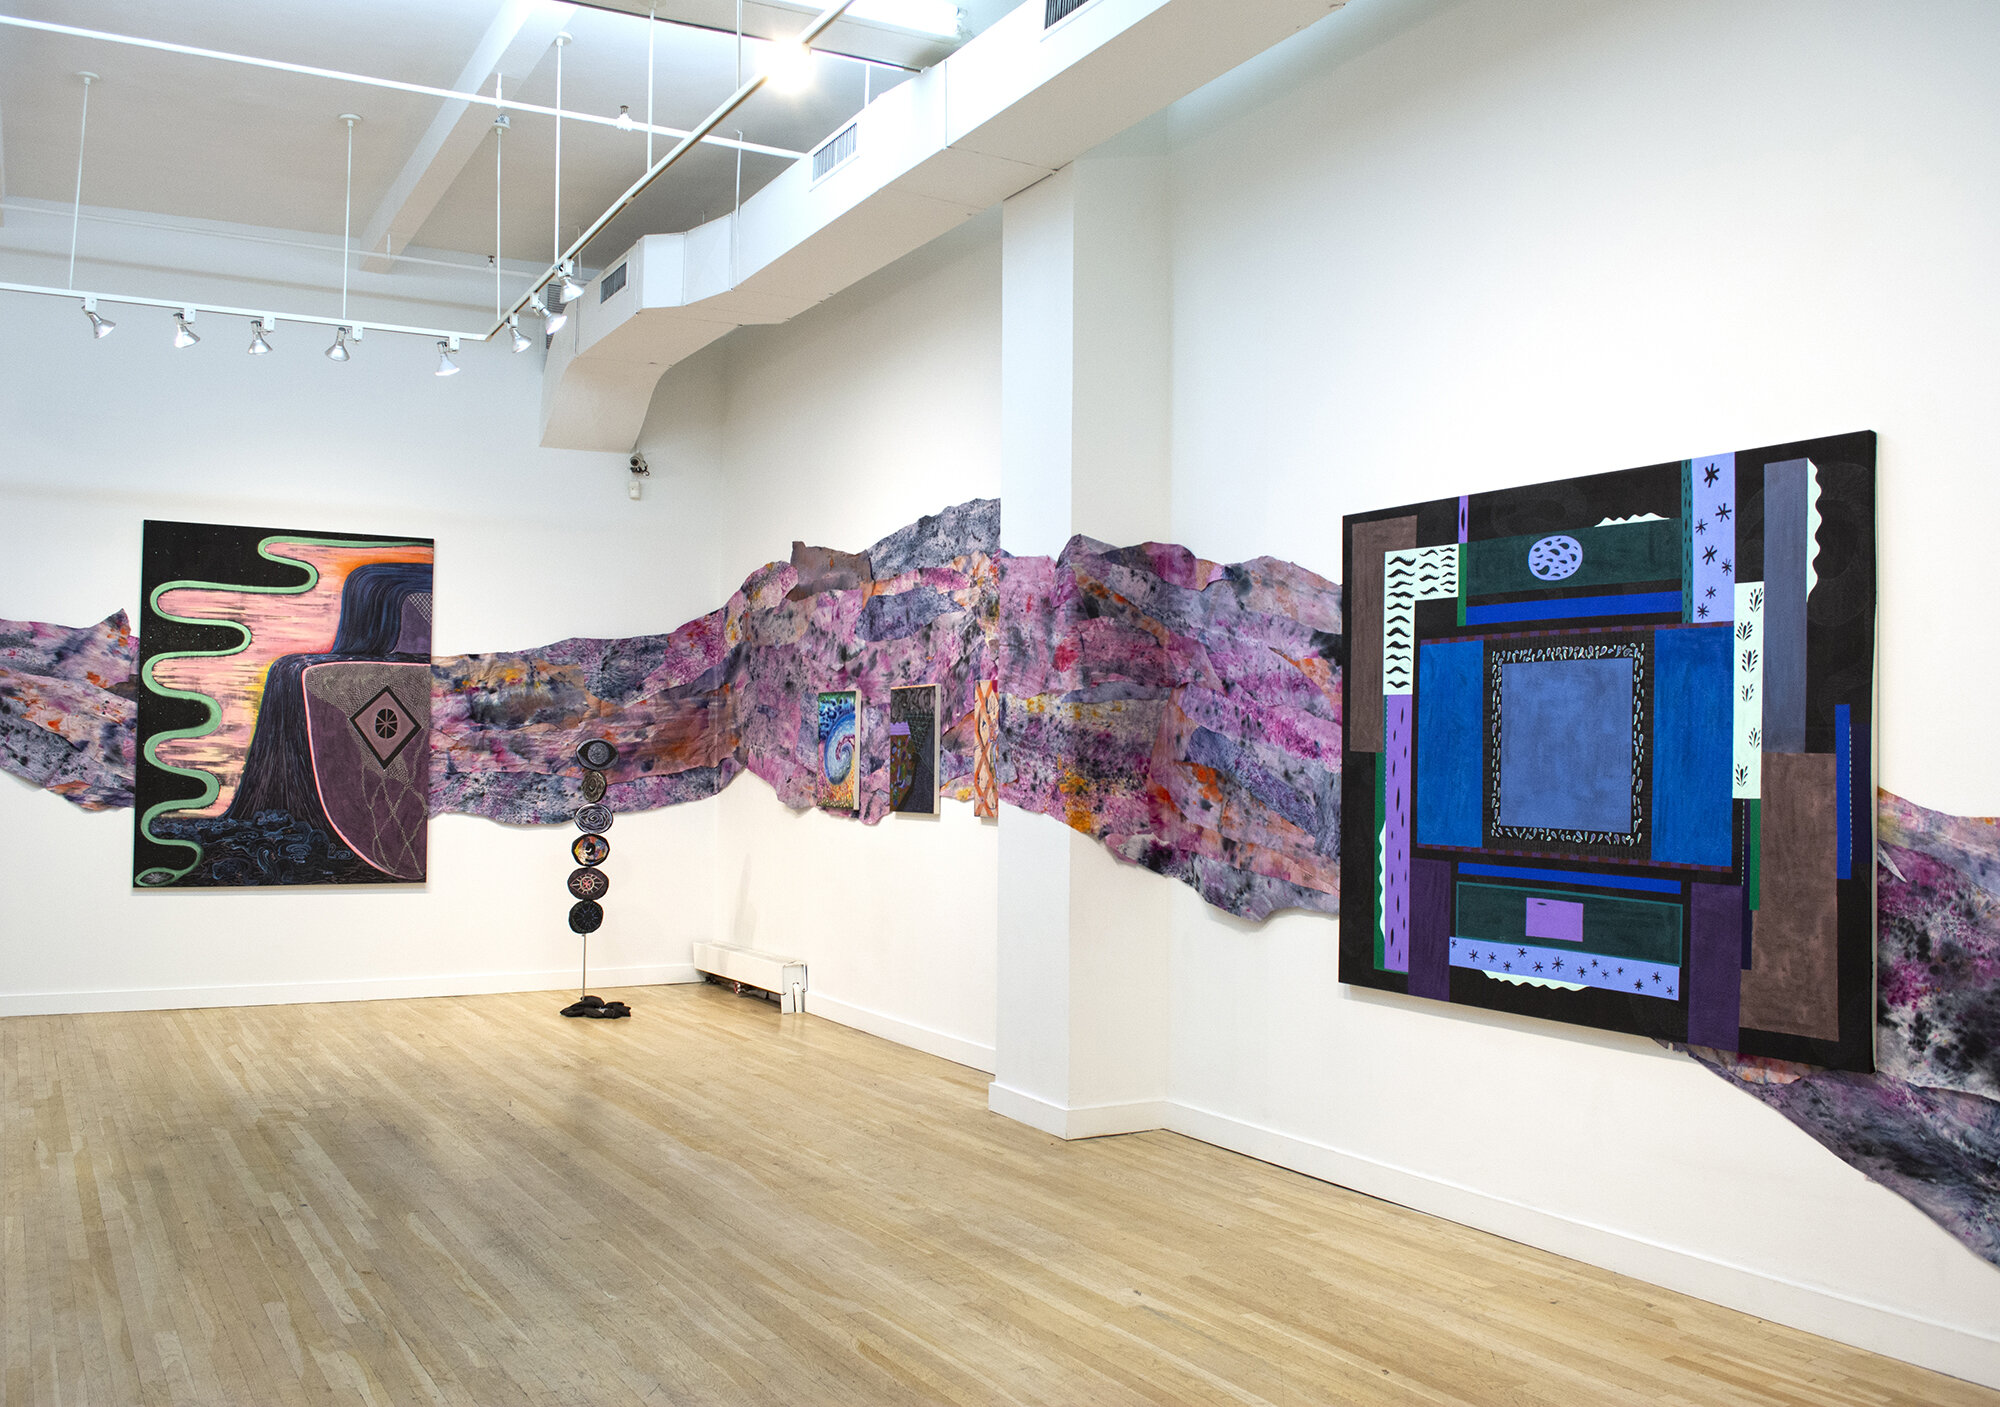 Installation view of Natessa Amin:  Hyphen .  [Image description: A long, undulating trail of purple, pink, and blue hand-dyed newsprint curves across the gallery walls. Hanging on top of it are two large and colorful paintings, approximately 5 by 7 feet each. In the corner of the room stands a black sculpture, 67 inches tall, of several round shapes stacked on top of one another.]